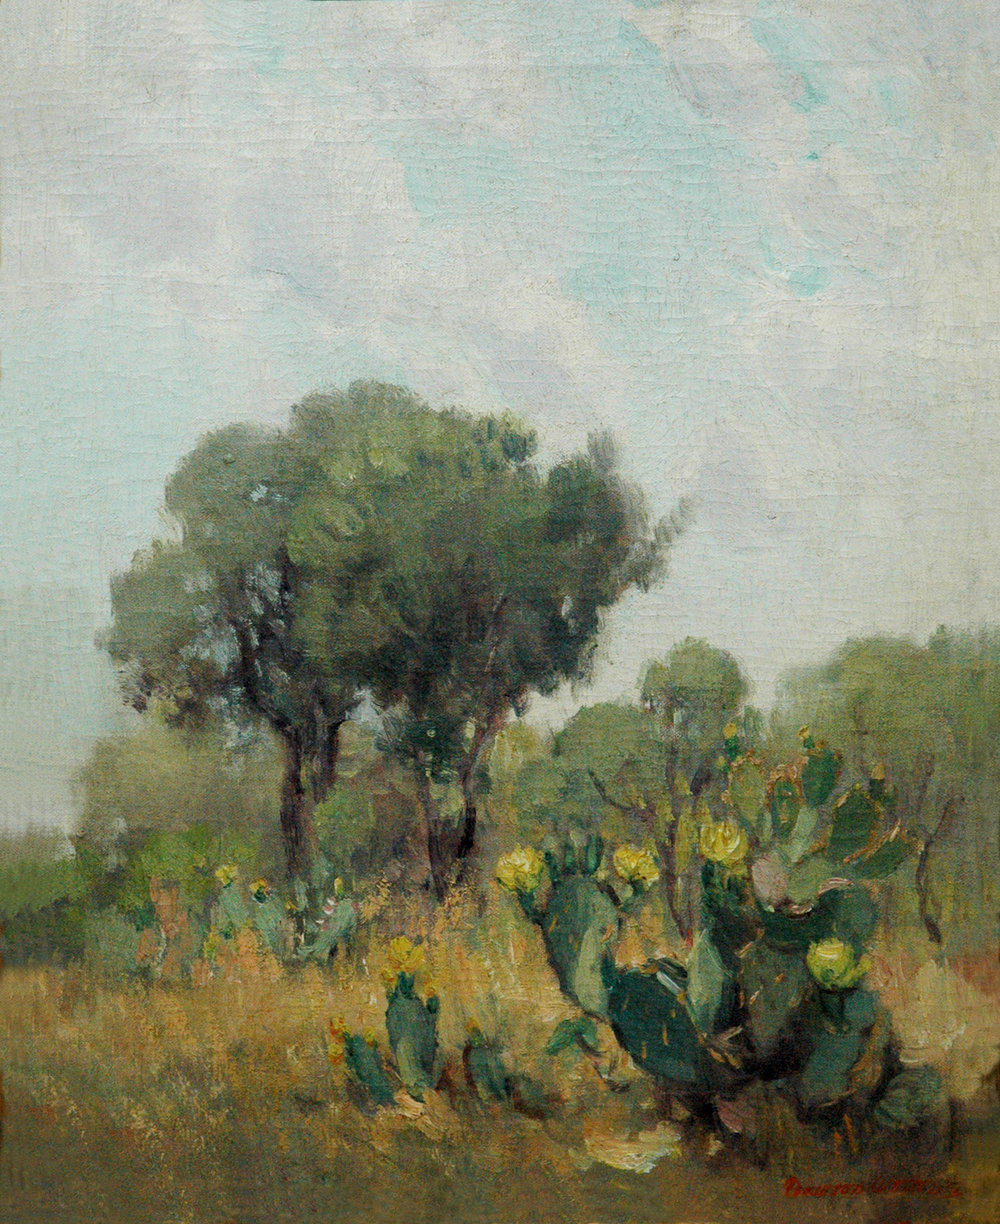 *Sold* Yellow Cactus, 20 x 16, oil on canvas, 1929